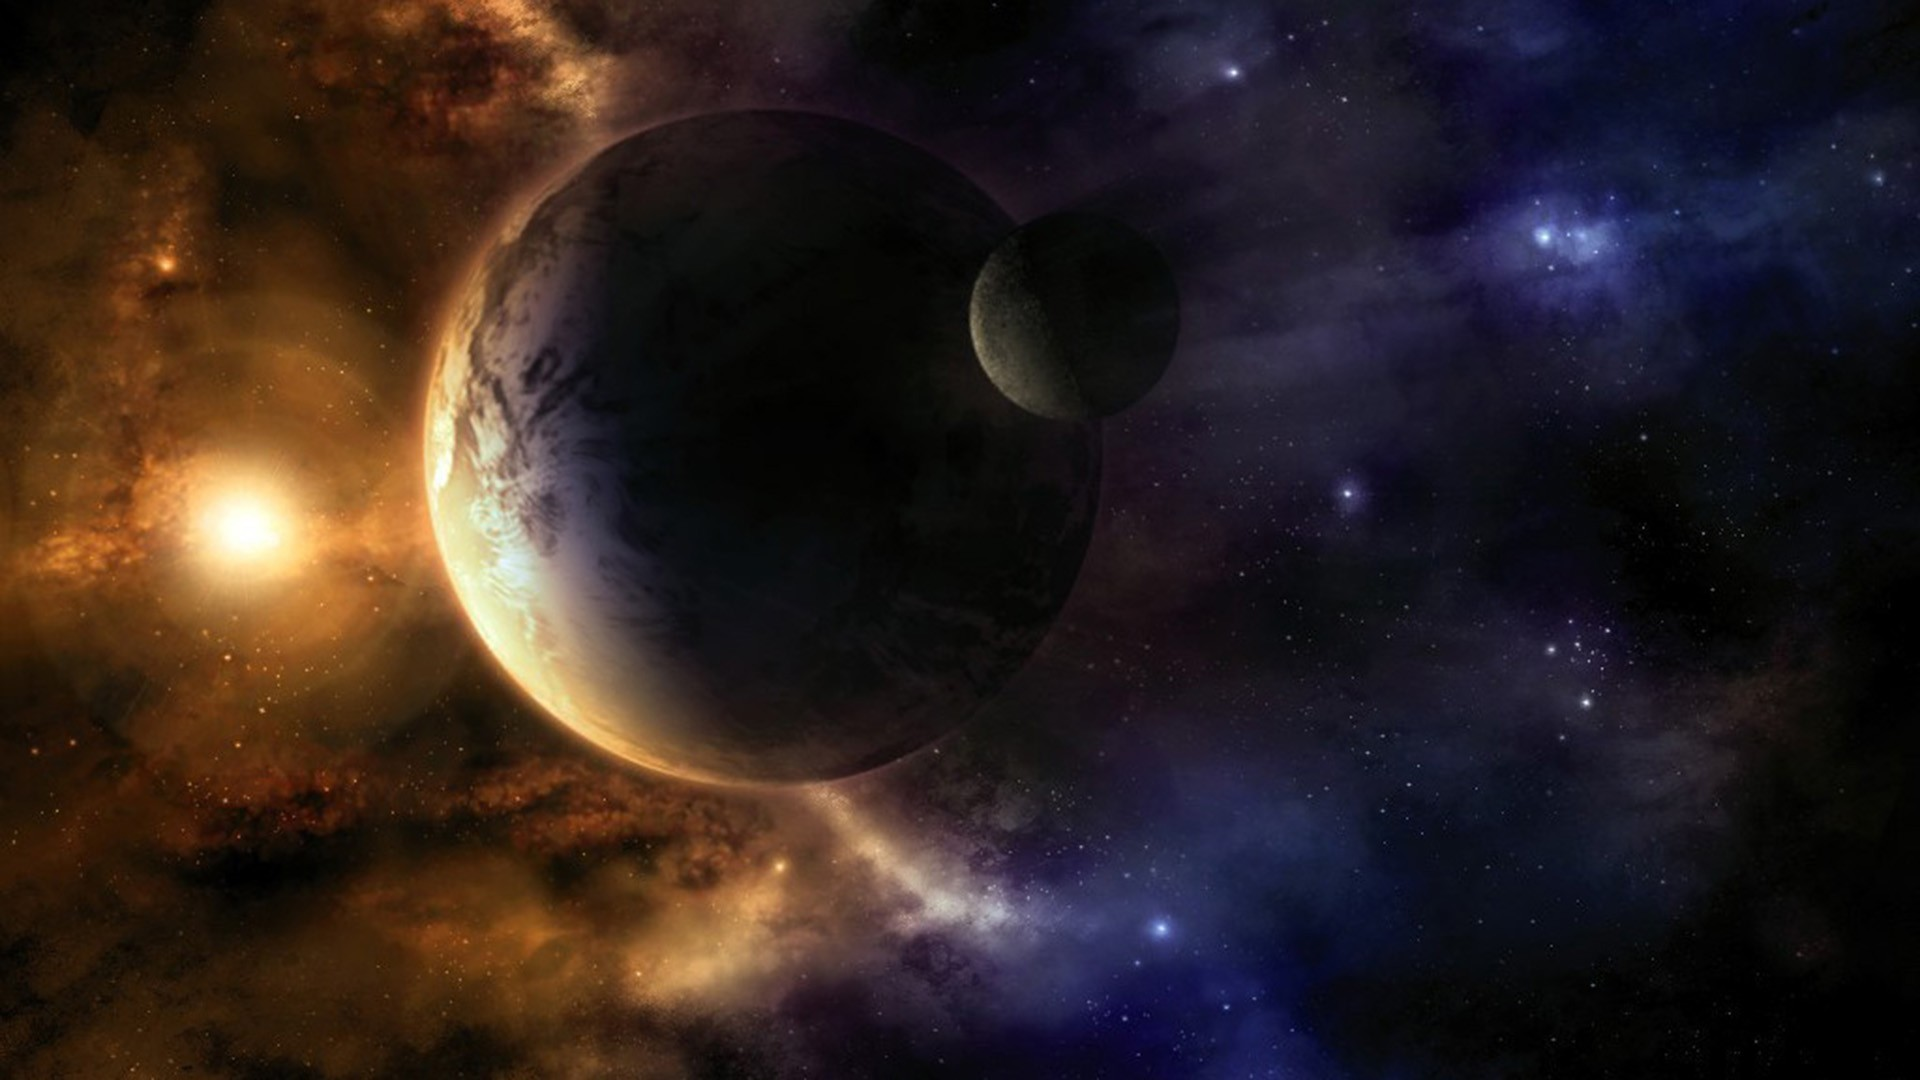 sun moon earth space wallpaper pc android iphone and ipad wallpapers .